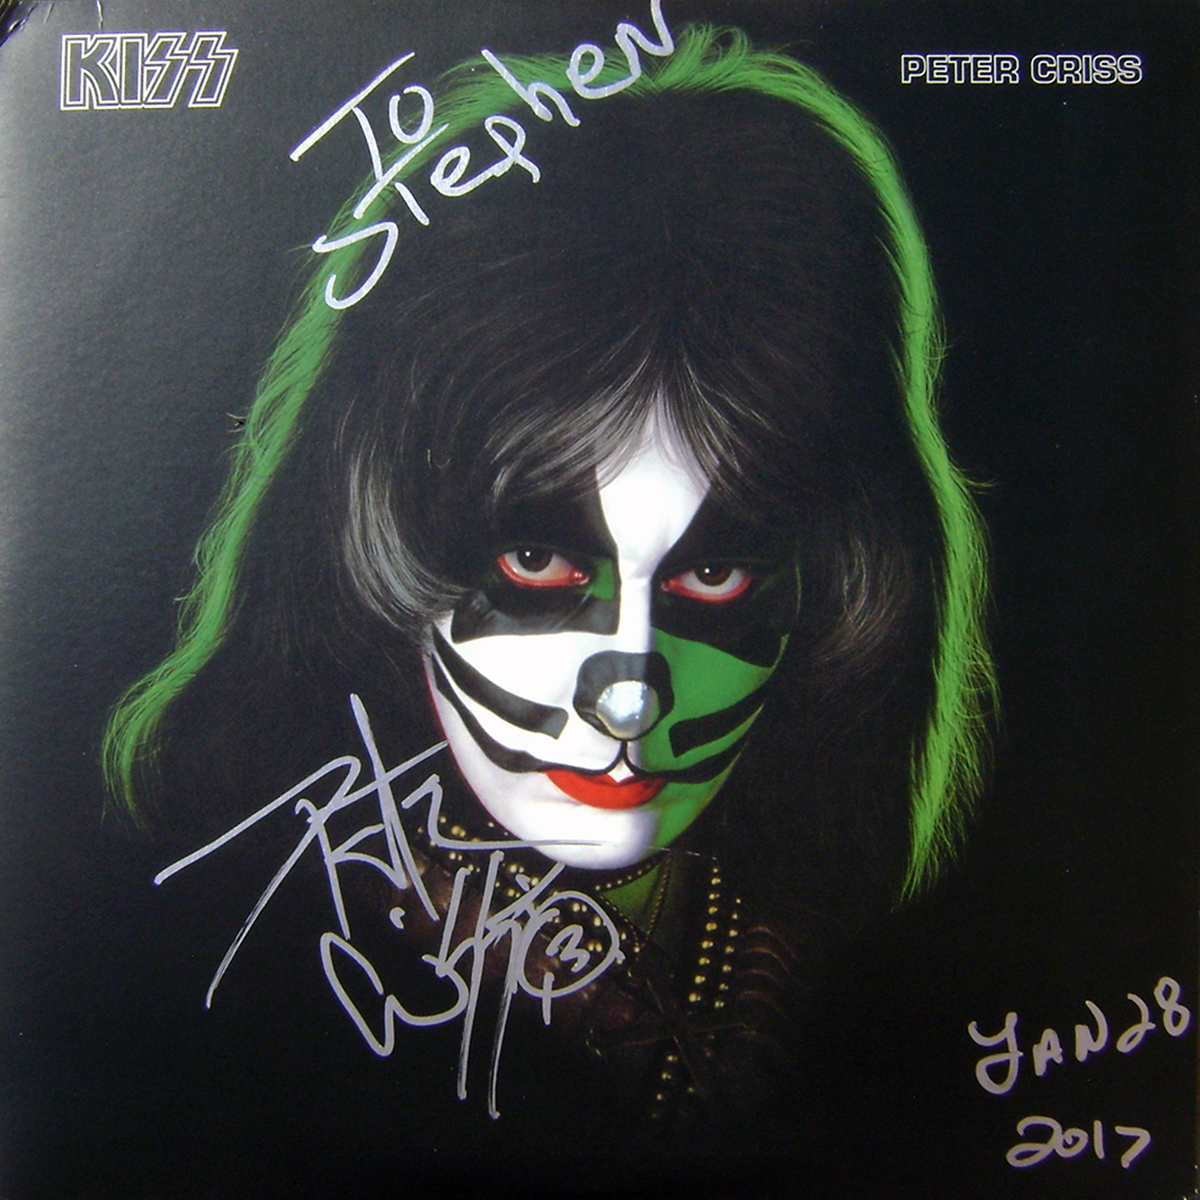 Peter Criss - Solo Album #1